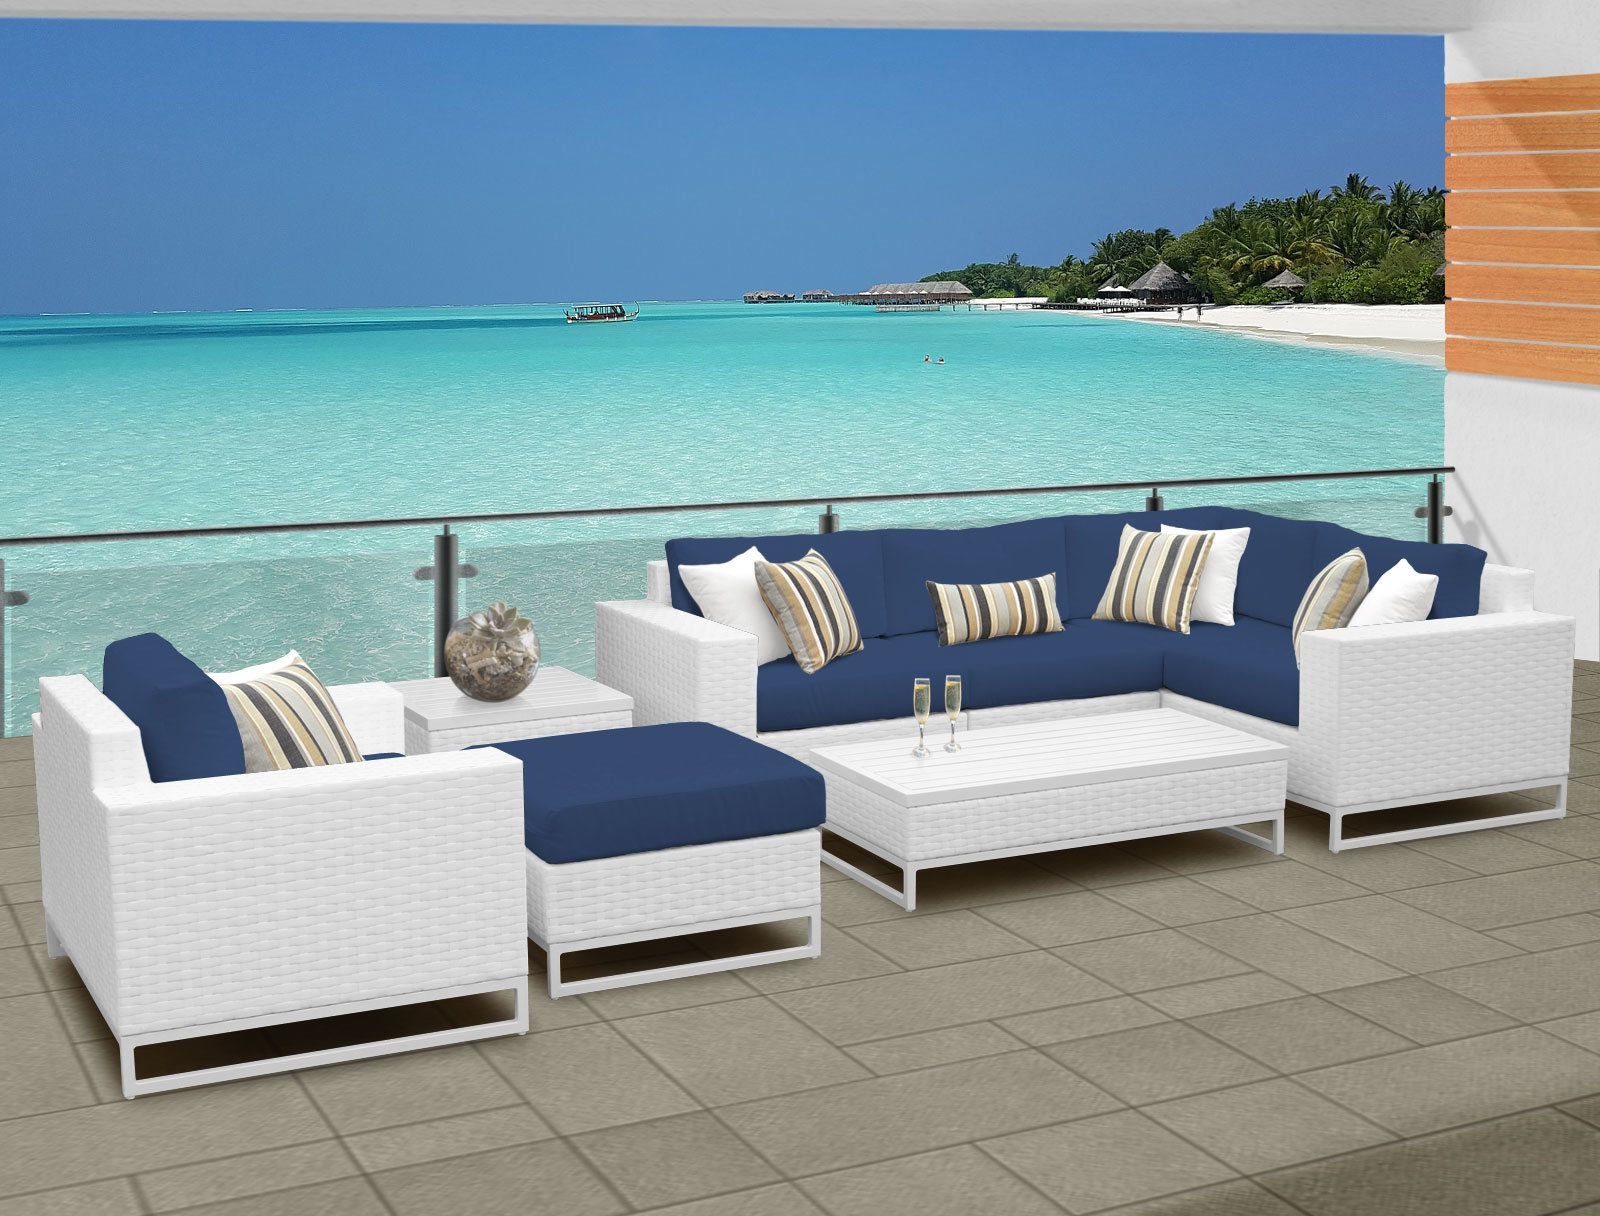 Popular Miami 8 Piece Sectional Seating Group With Cushions Throughout Menifee Patio Sofas With Cushions (Gallery 6 of 25)